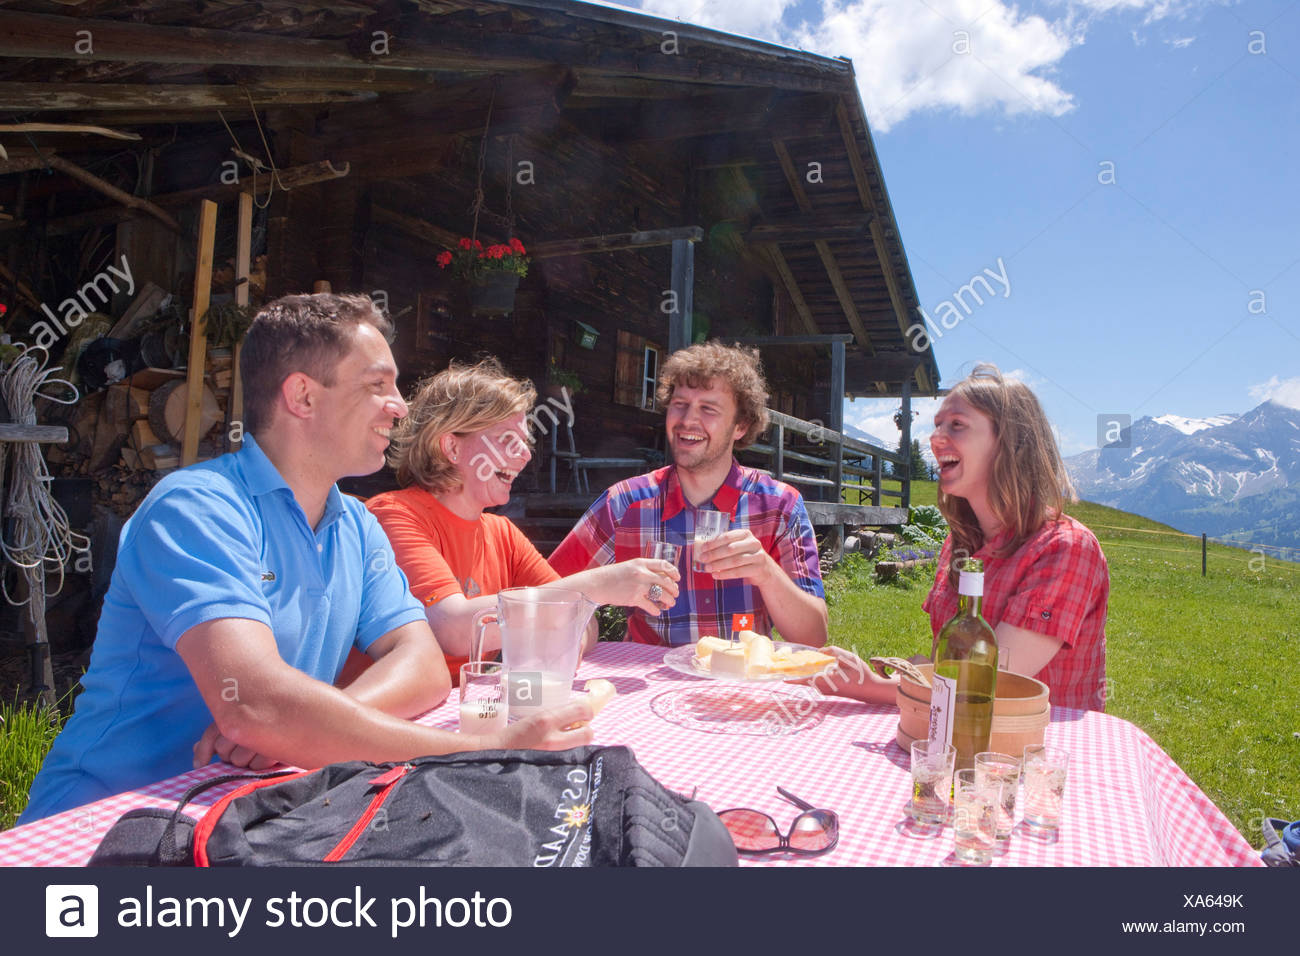 Traveller, alpine hut, canton, Bern, mountain, mountains, couple, Couples, Gstaad, summer sport, footpath, walking, hiking, trek - Stock Image